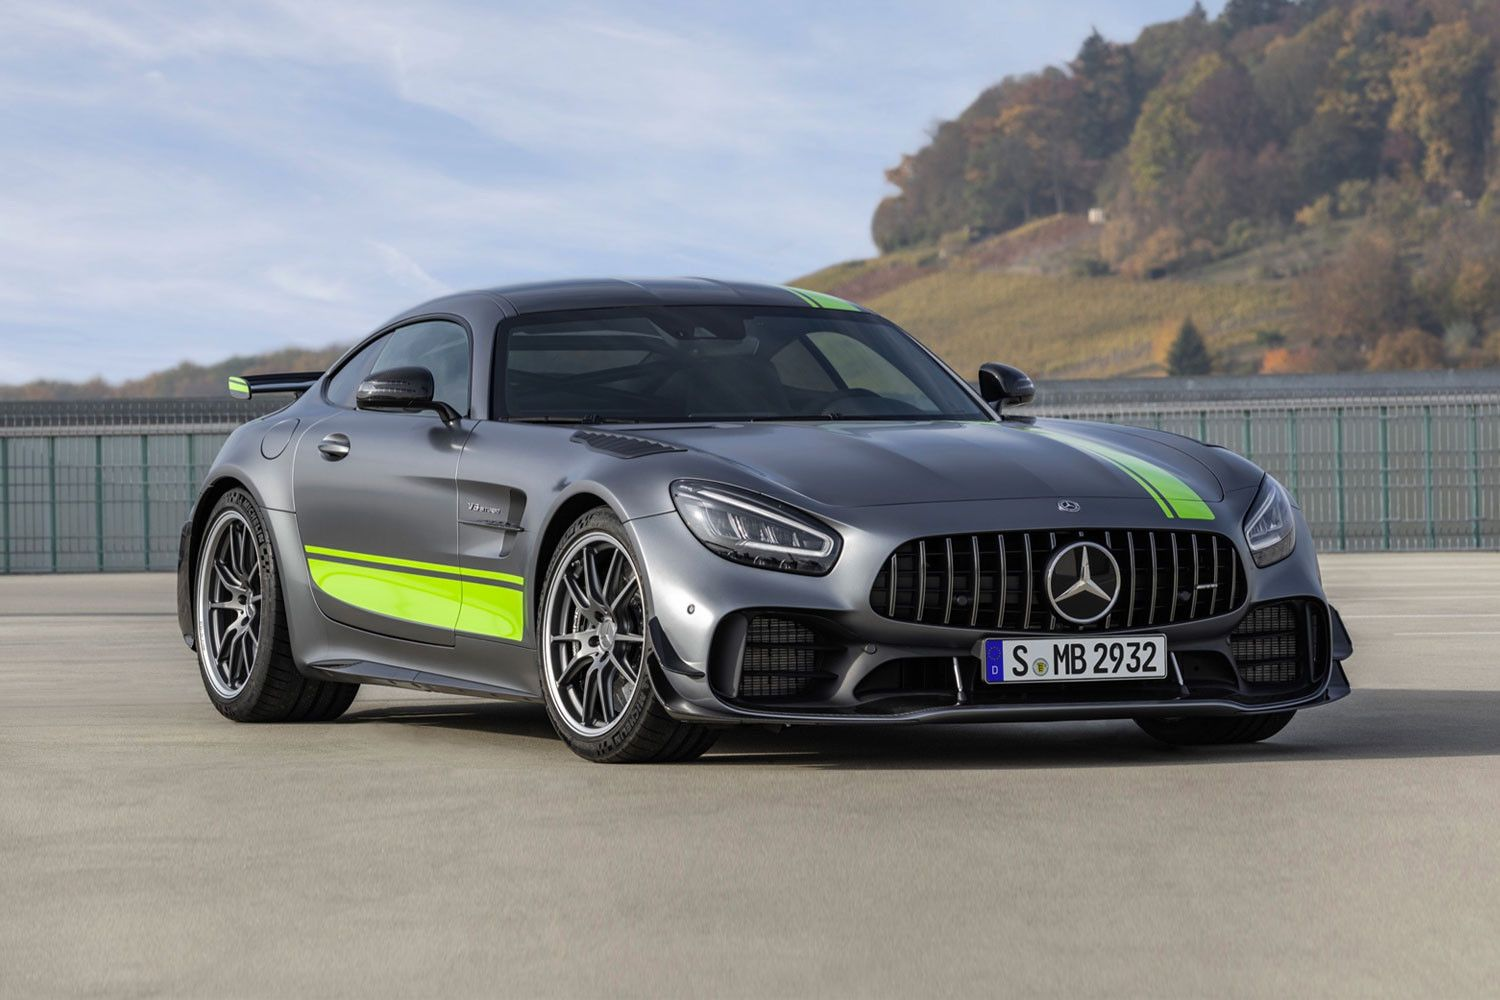 Mercedes Benz Goes Faster With Its Amg Gt R Pro Mercedes Amg Gt R Mercedes Amg Mercedes Benz Amg